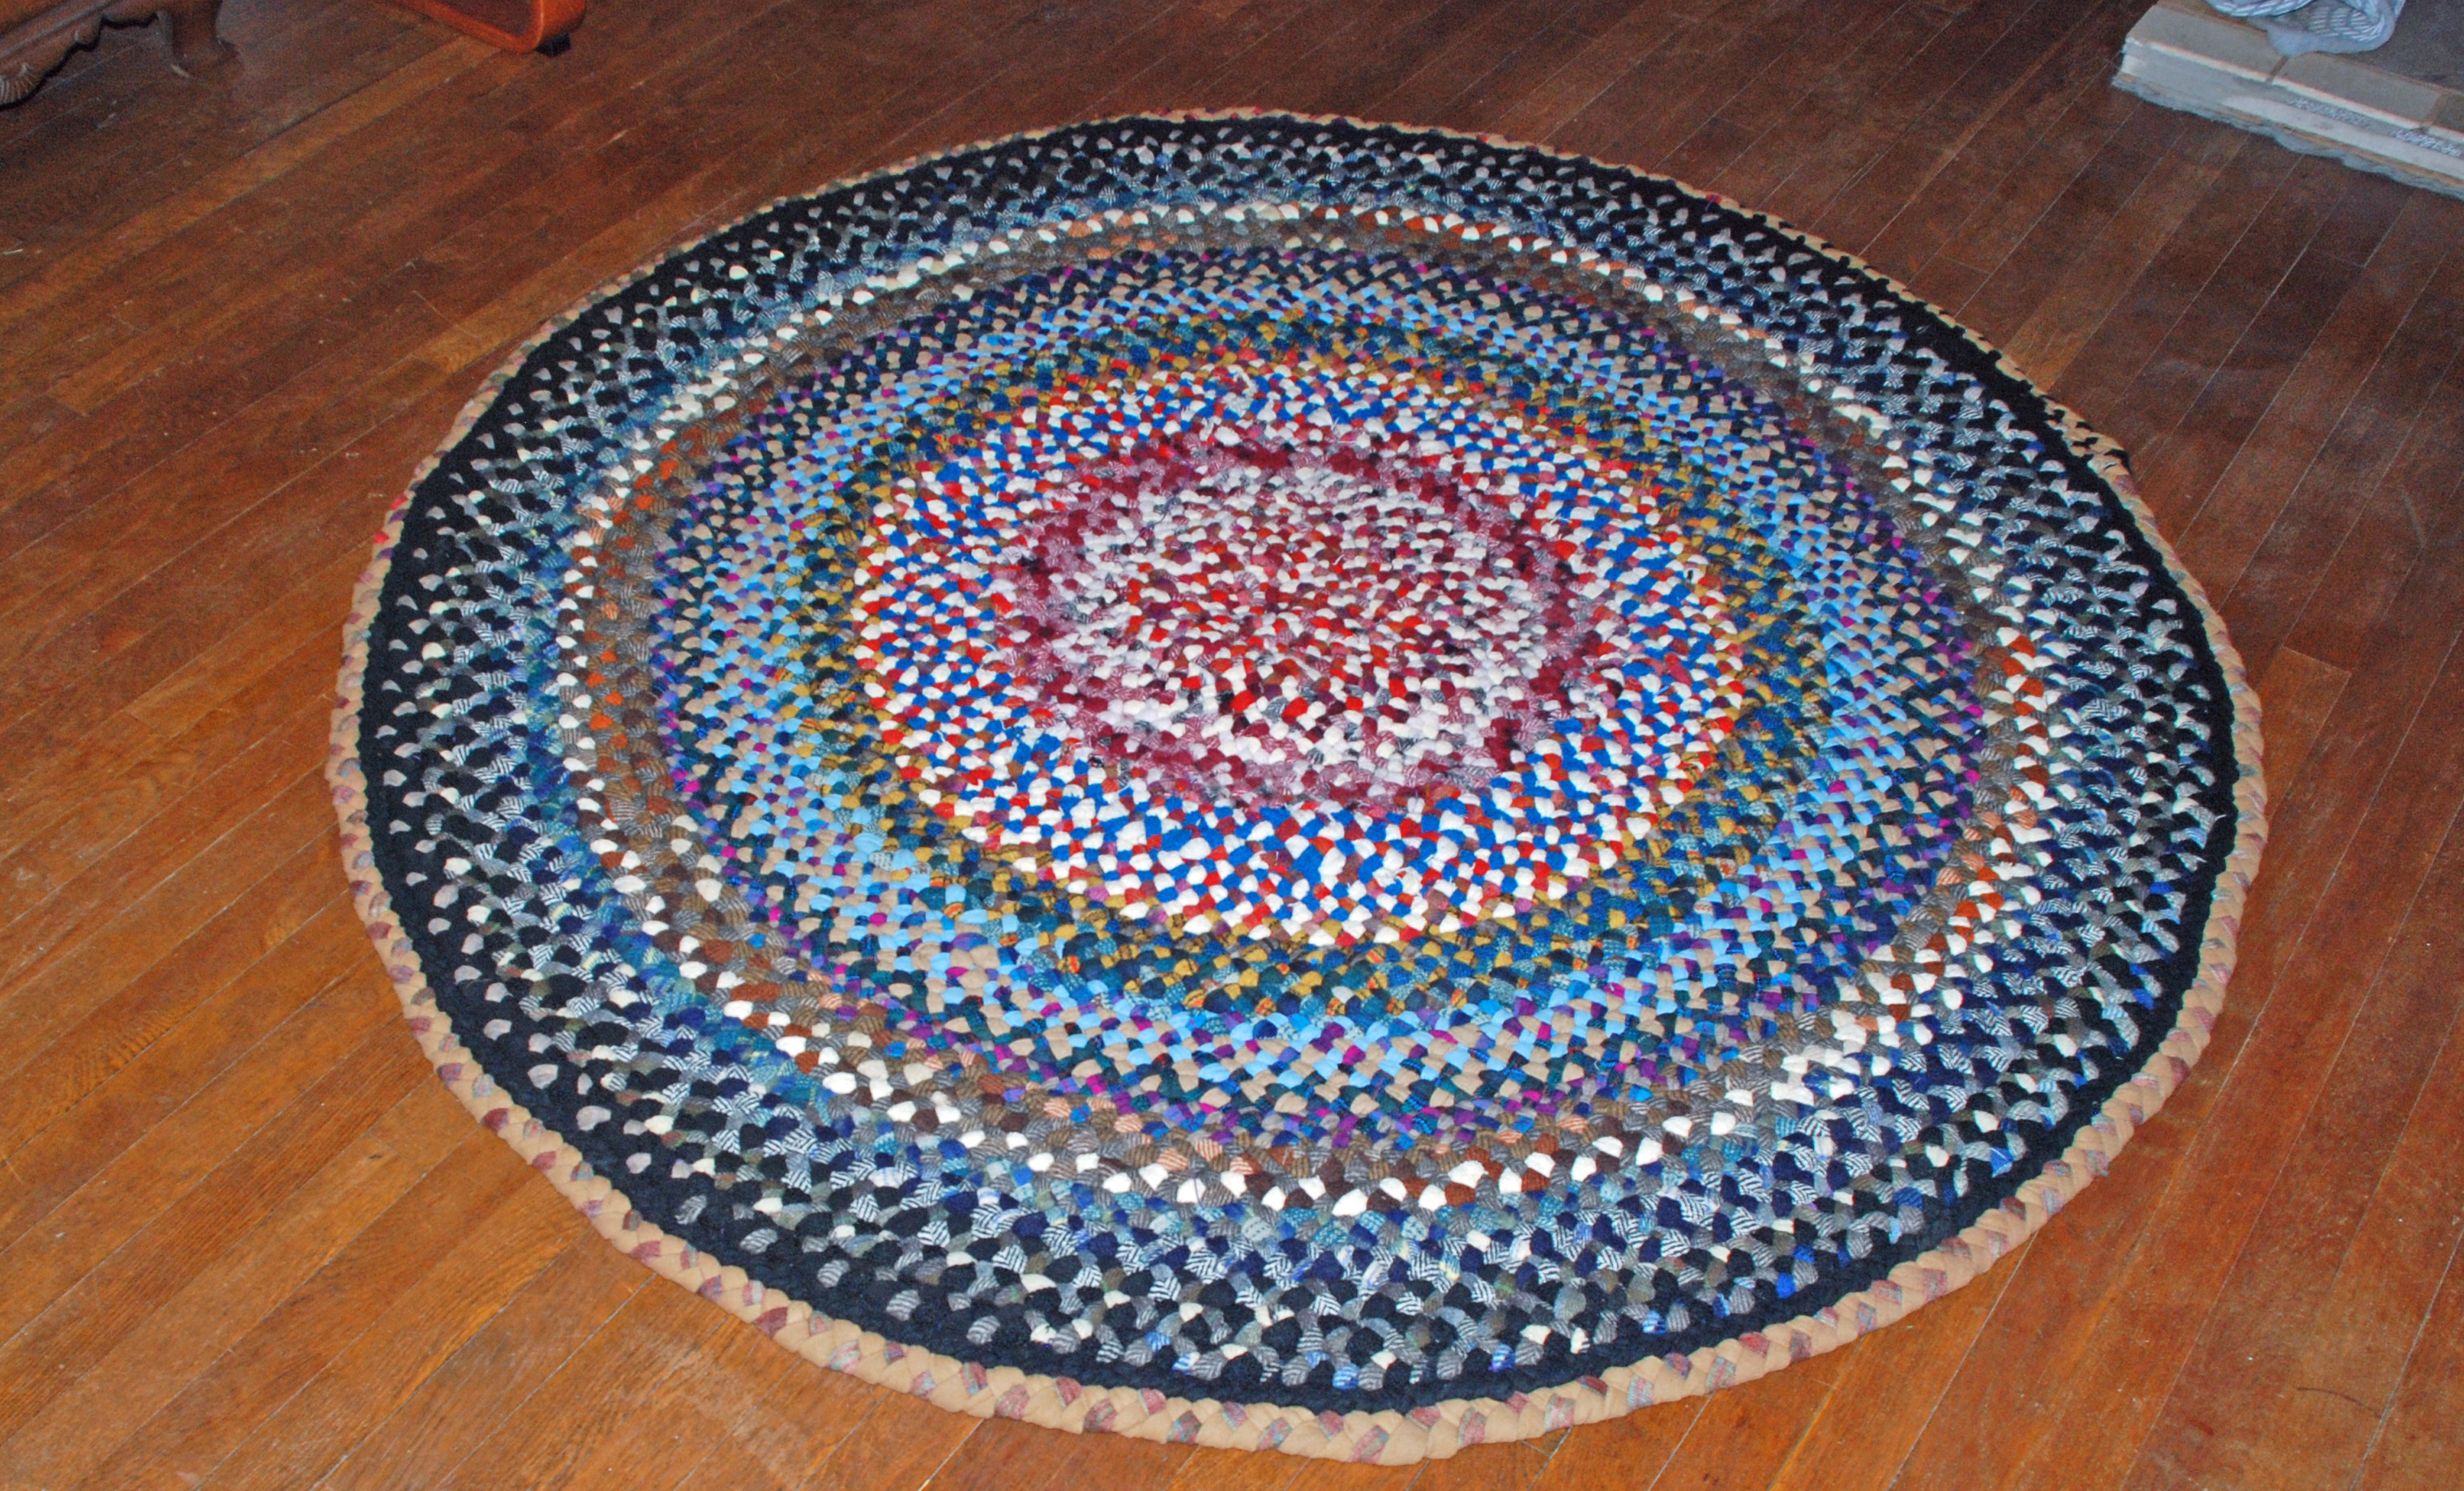 Extraordinary braided rug for floorings and rugs ideas with round braided rugs and braided area rugs